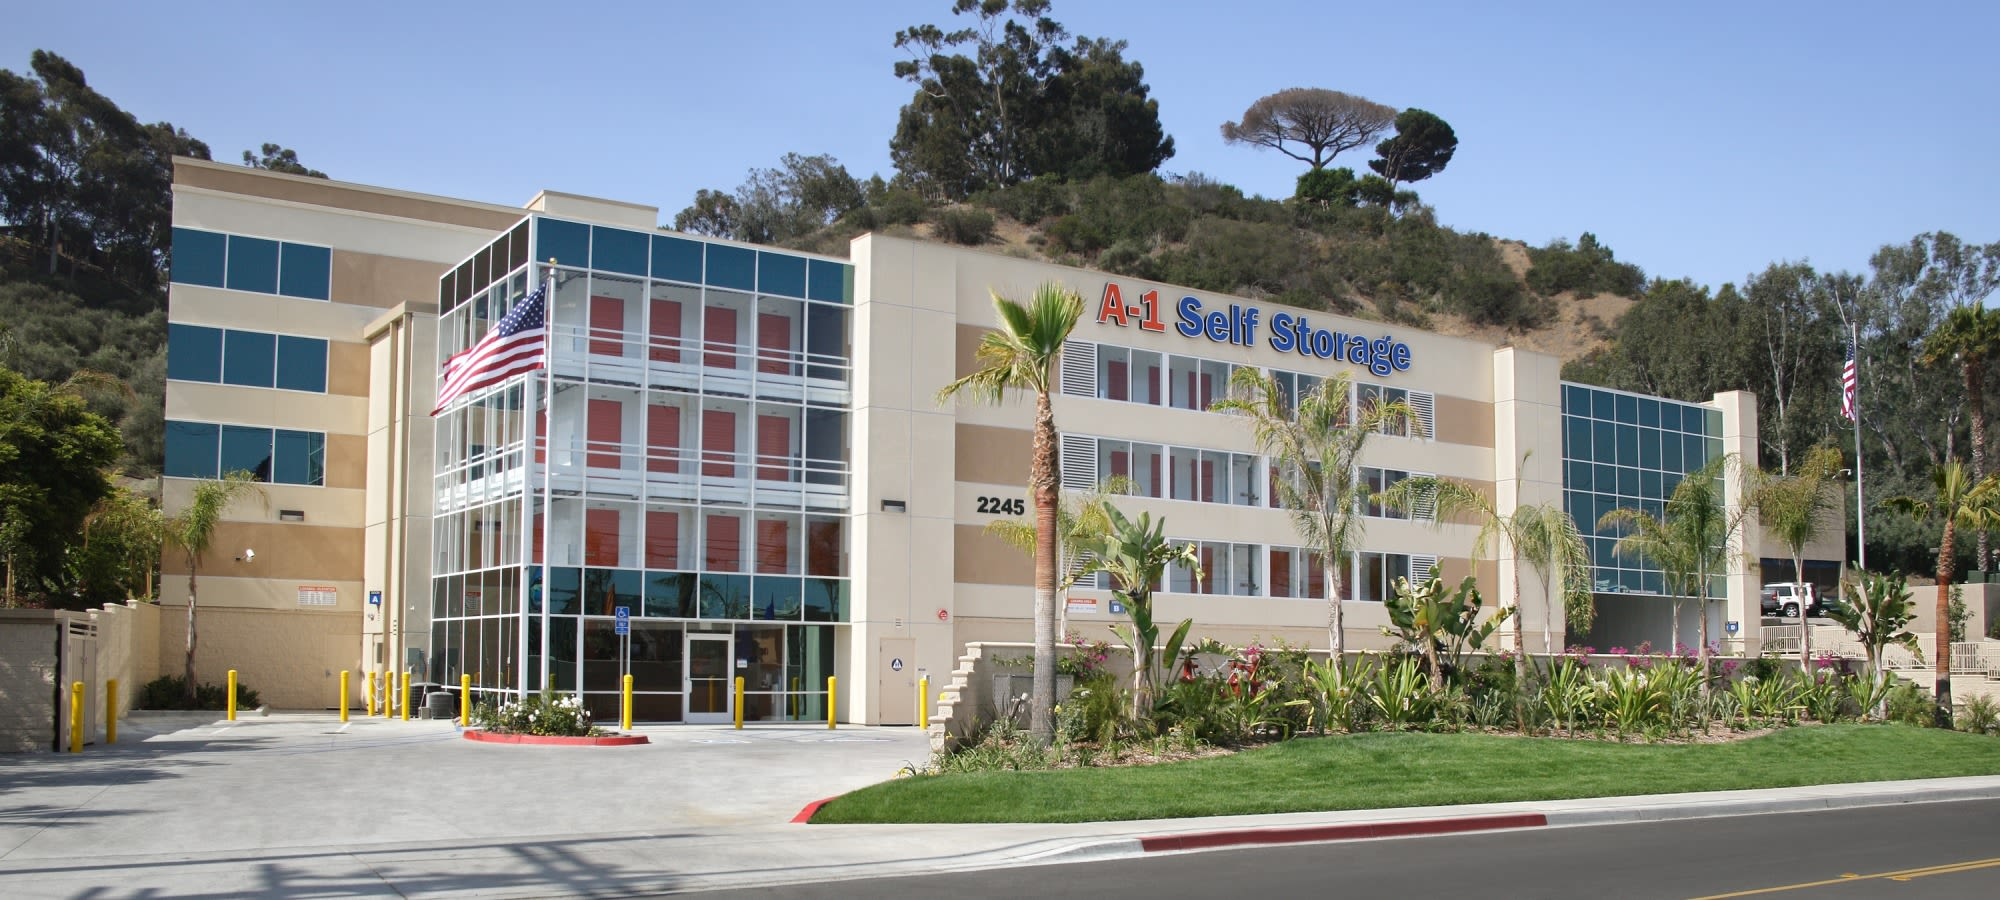 Self storage in San Diego